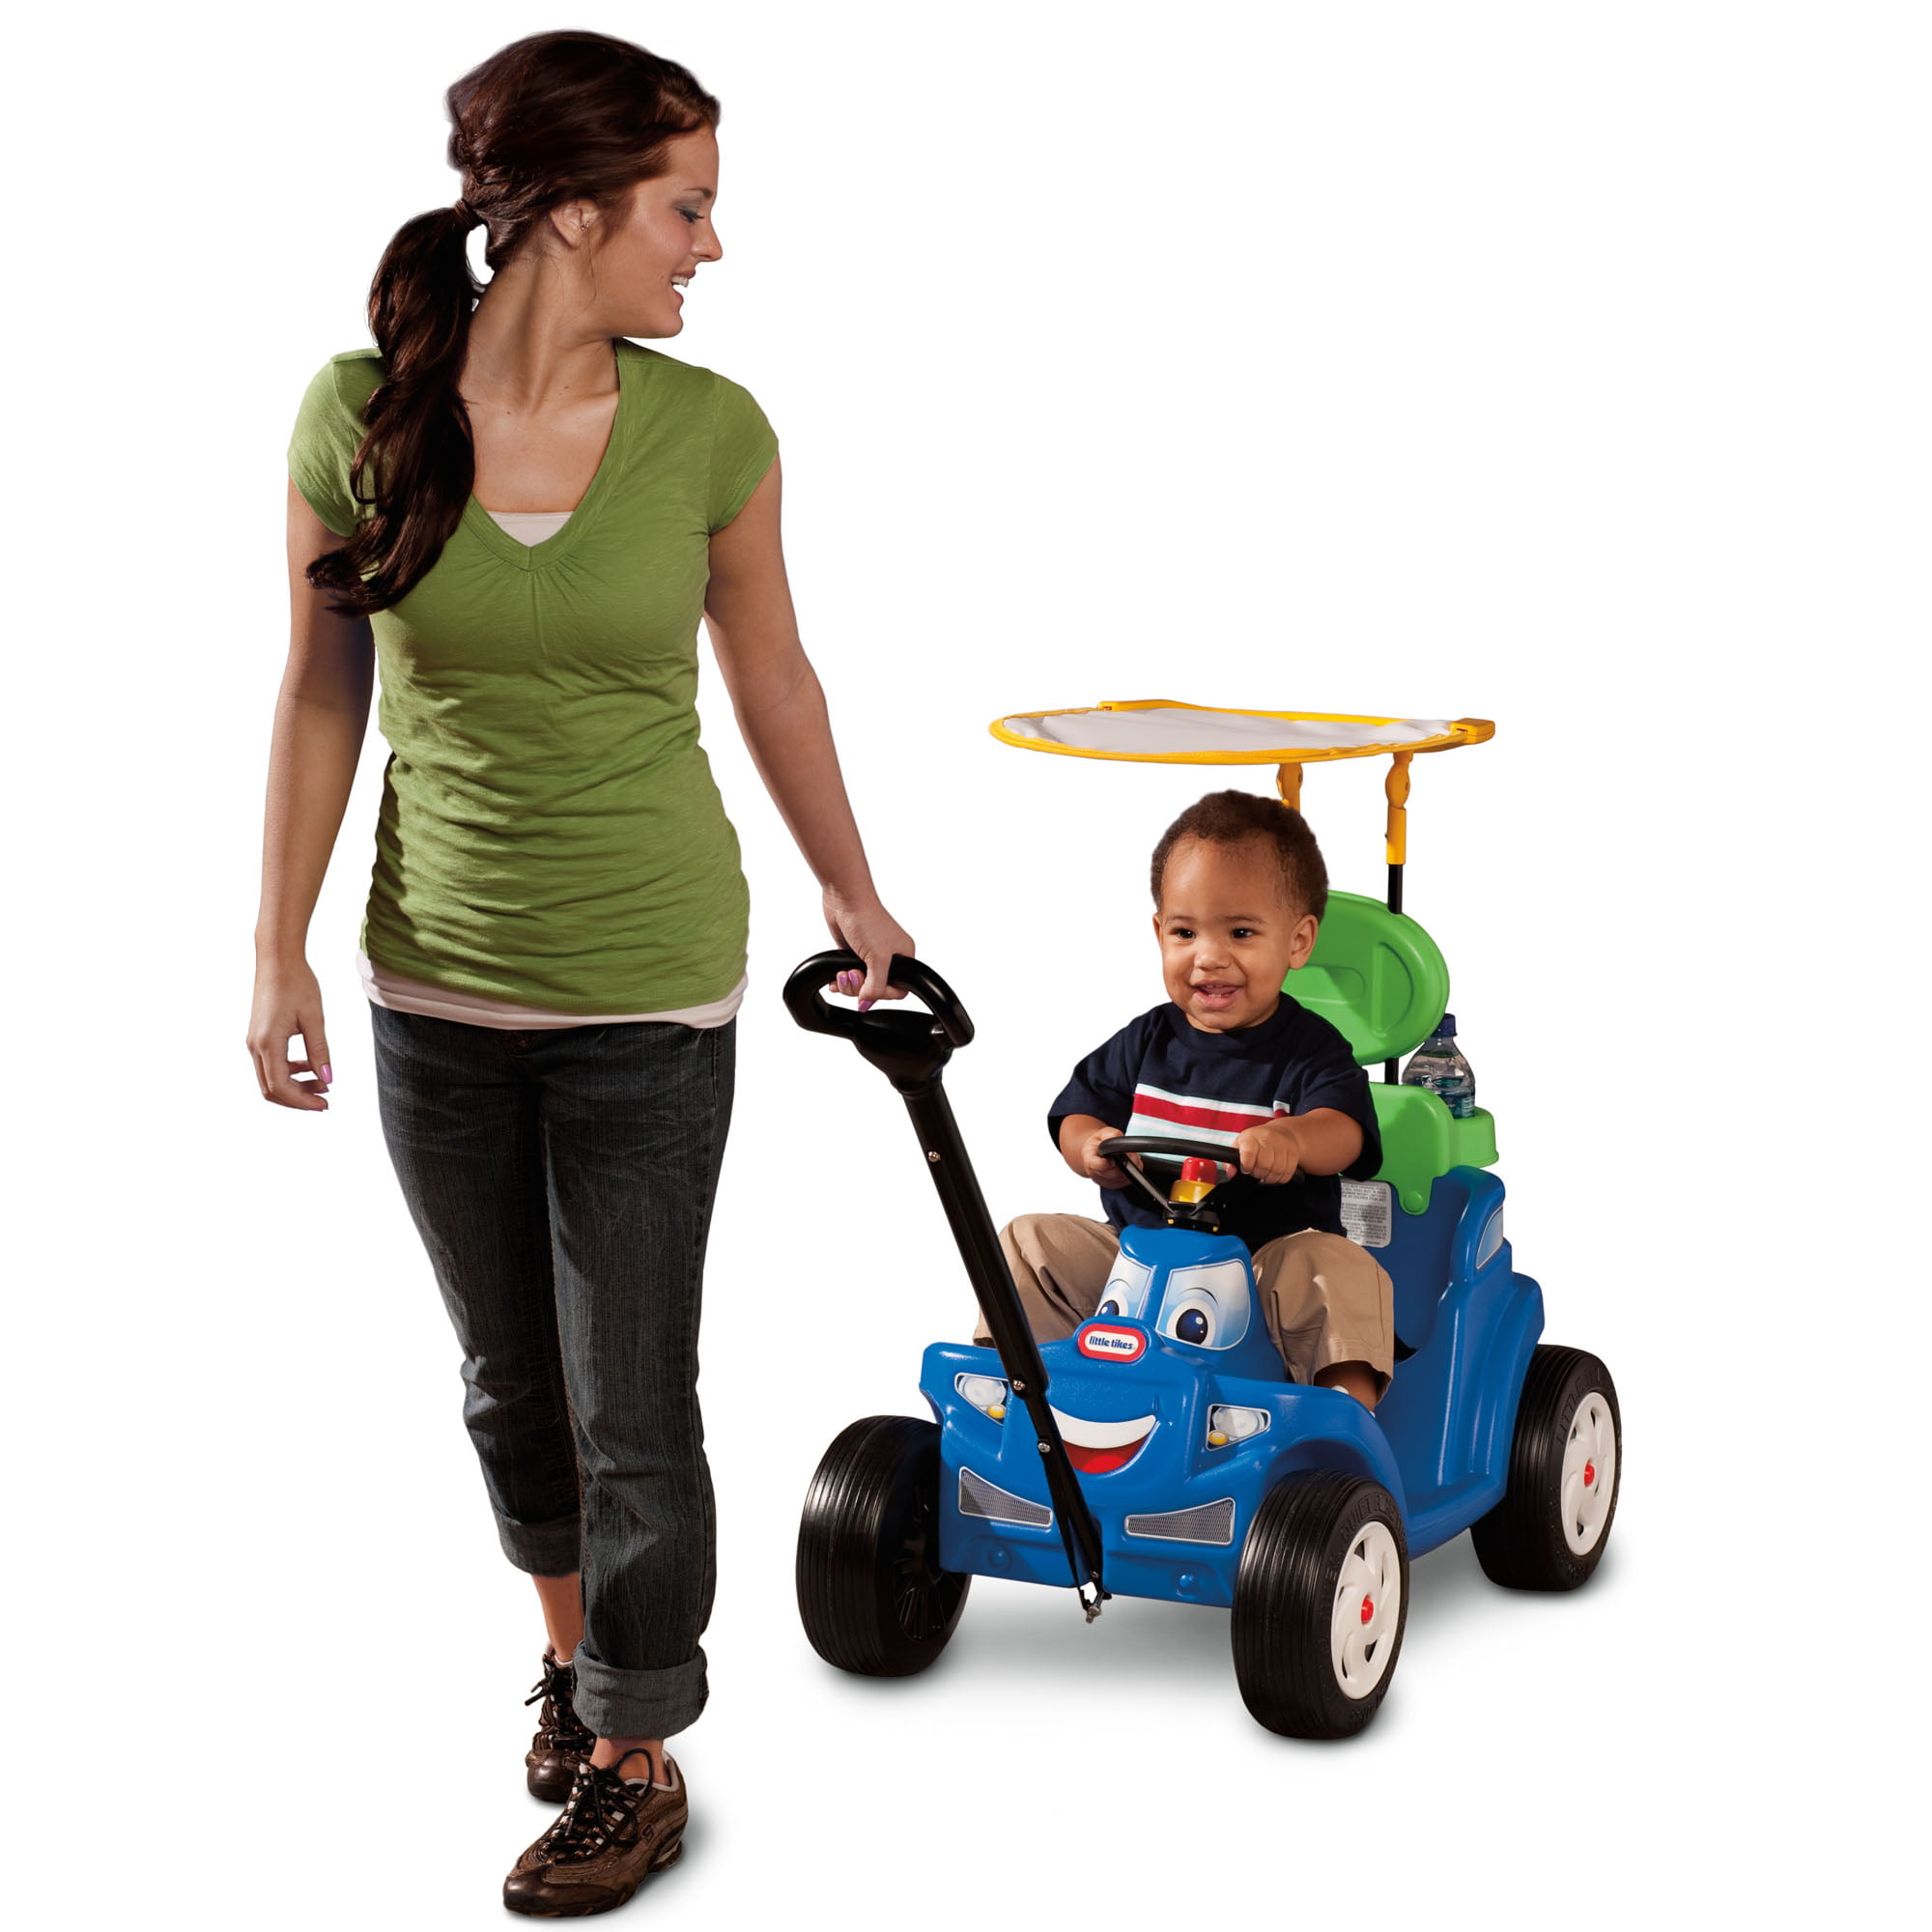 Little Tikes Deluxe 2-in-1 Cozy Roadster by Little Tikes Company